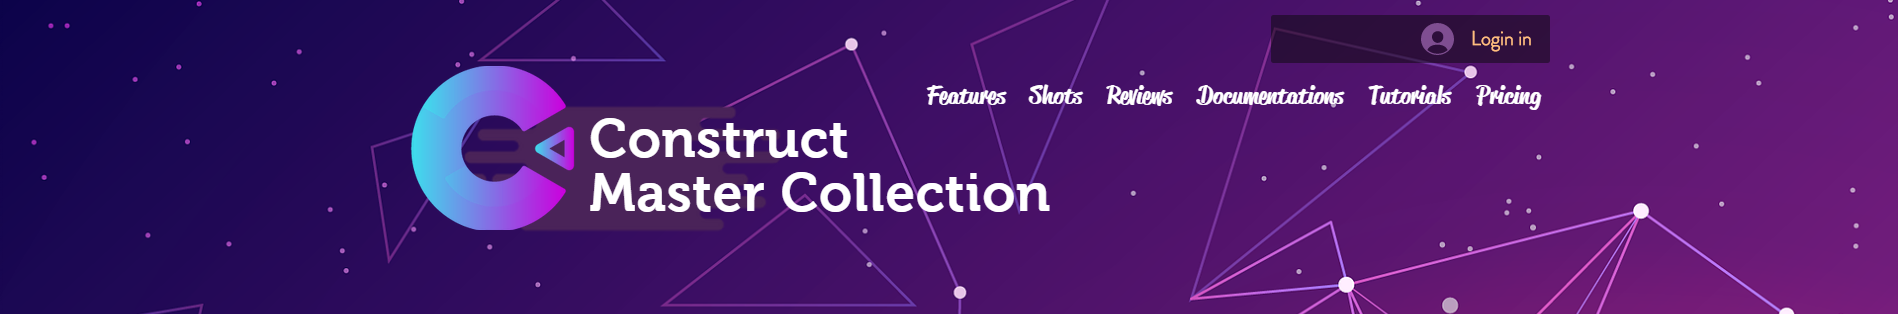 Construct Master Collection